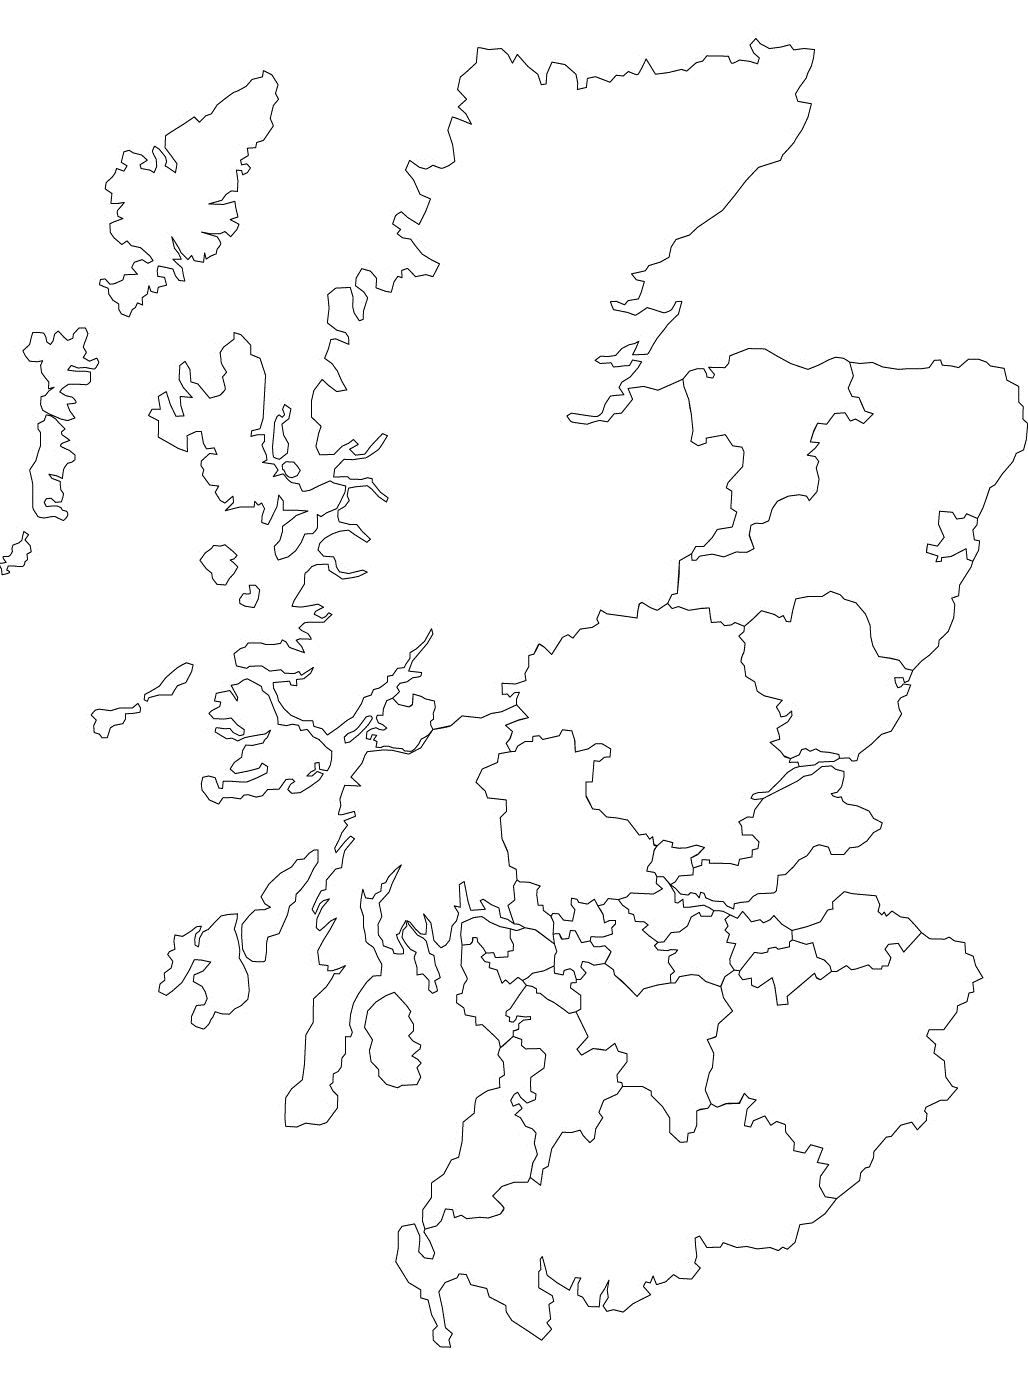 Printable outline map of Scotland and its districts.